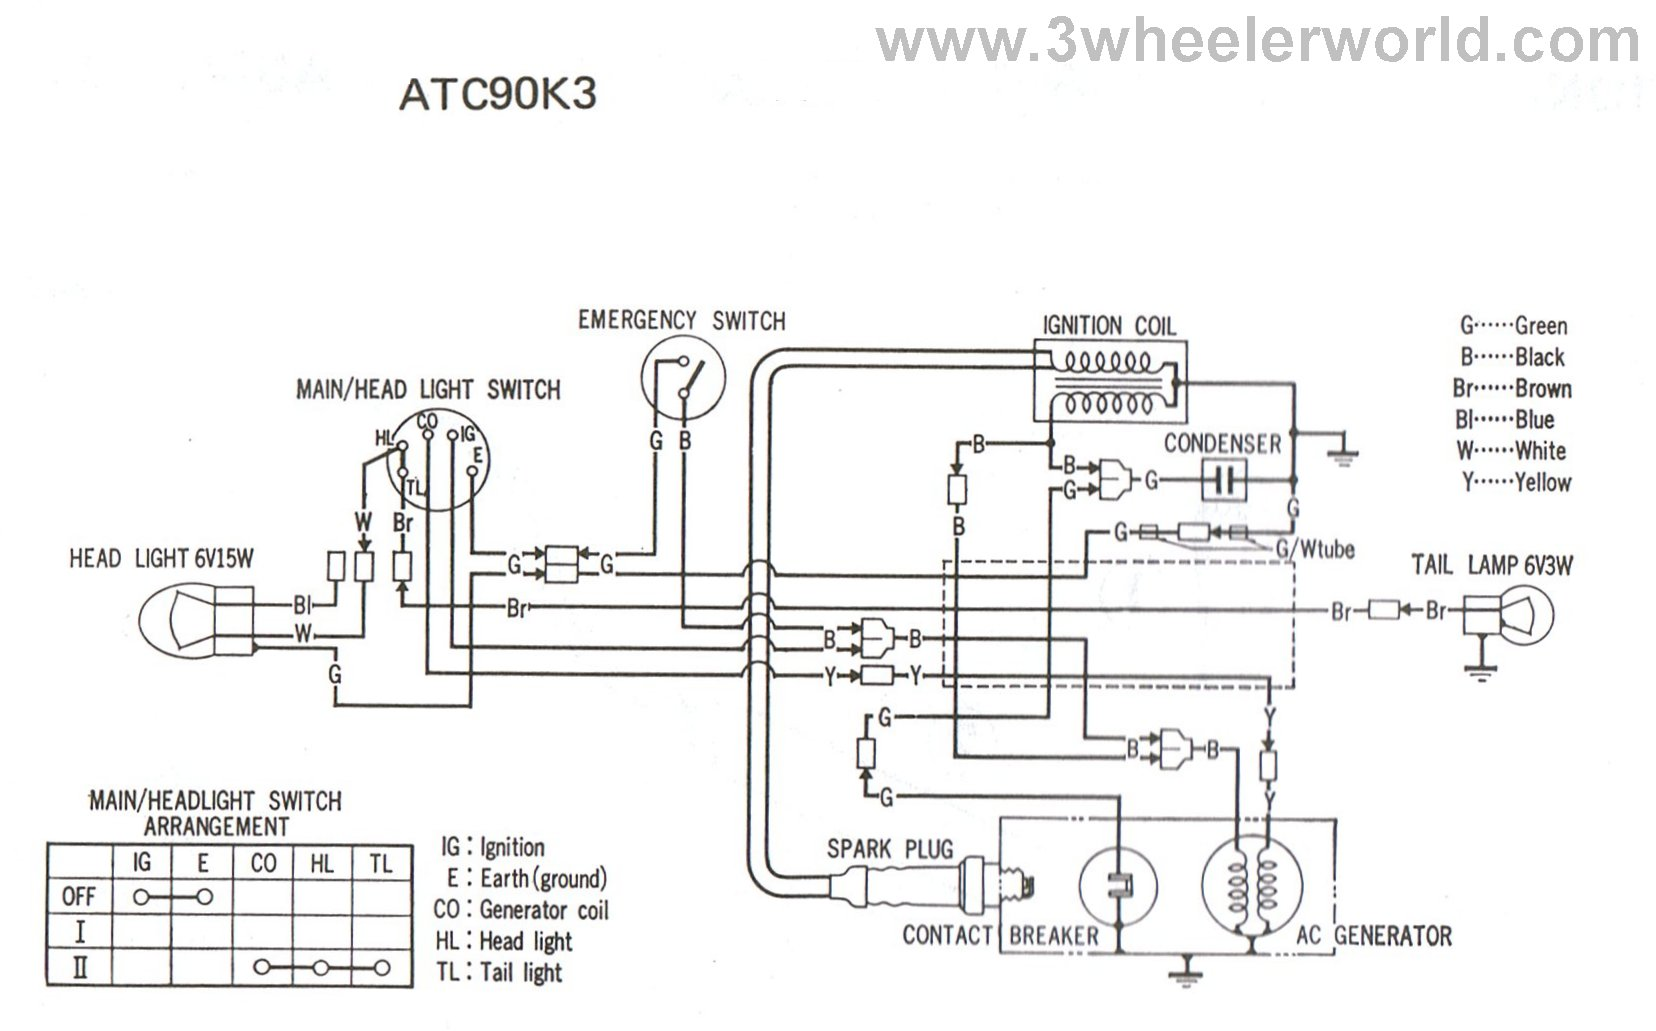 polaris 120 snowmobile wiring diagram schematics and wiring diagrams 2006 polaris 120 pro x youth snowmobile factory service manual